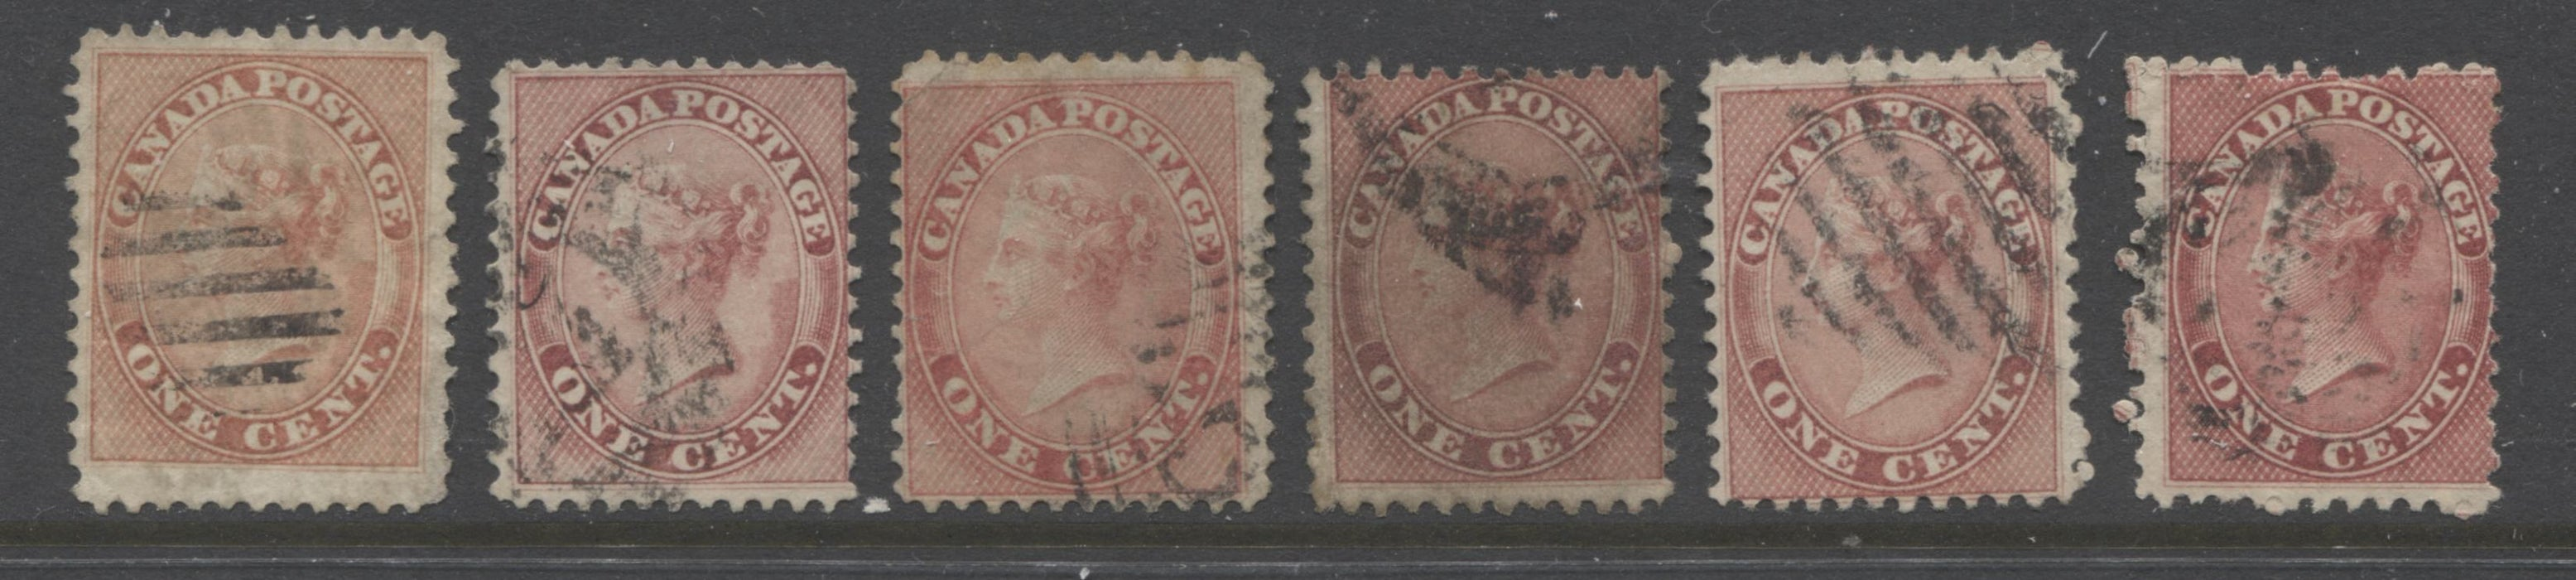 Canada #14, 14b 1c Rose and Deep Rose Queen Victoria, 1859-1867 First Cents Issue, Study Lot of 6 Fair to Very Good Used Examples With Various Shades, Perfs and Papers Brixton Chrome